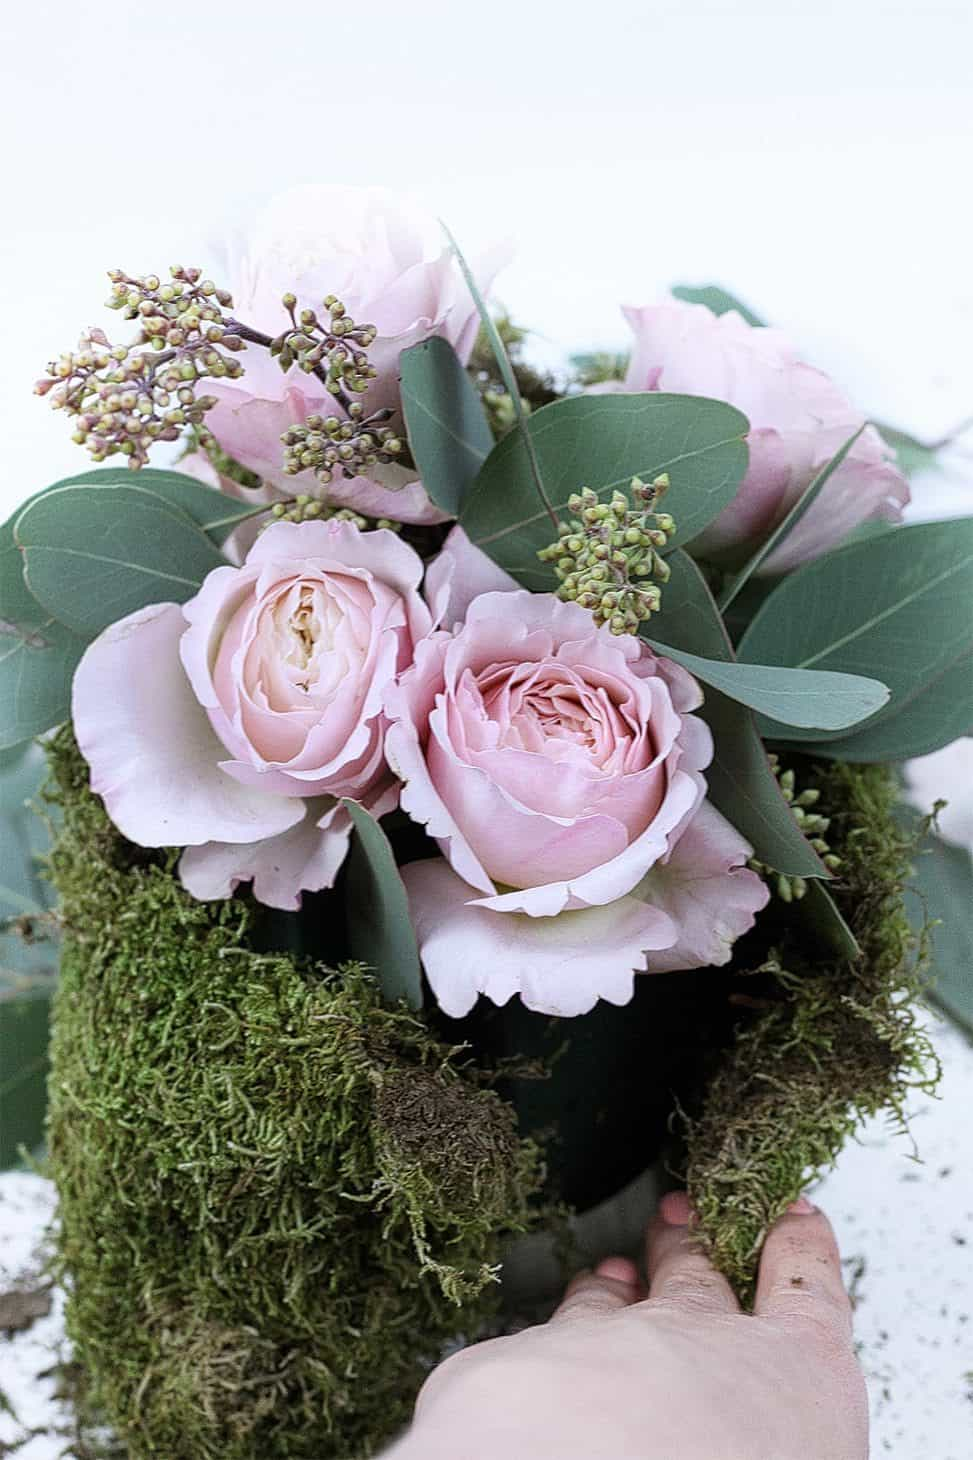 Diy No Vase Flower Arrangement Or Roses Under The Dome The Smell Of Roses The Smell Of Roses